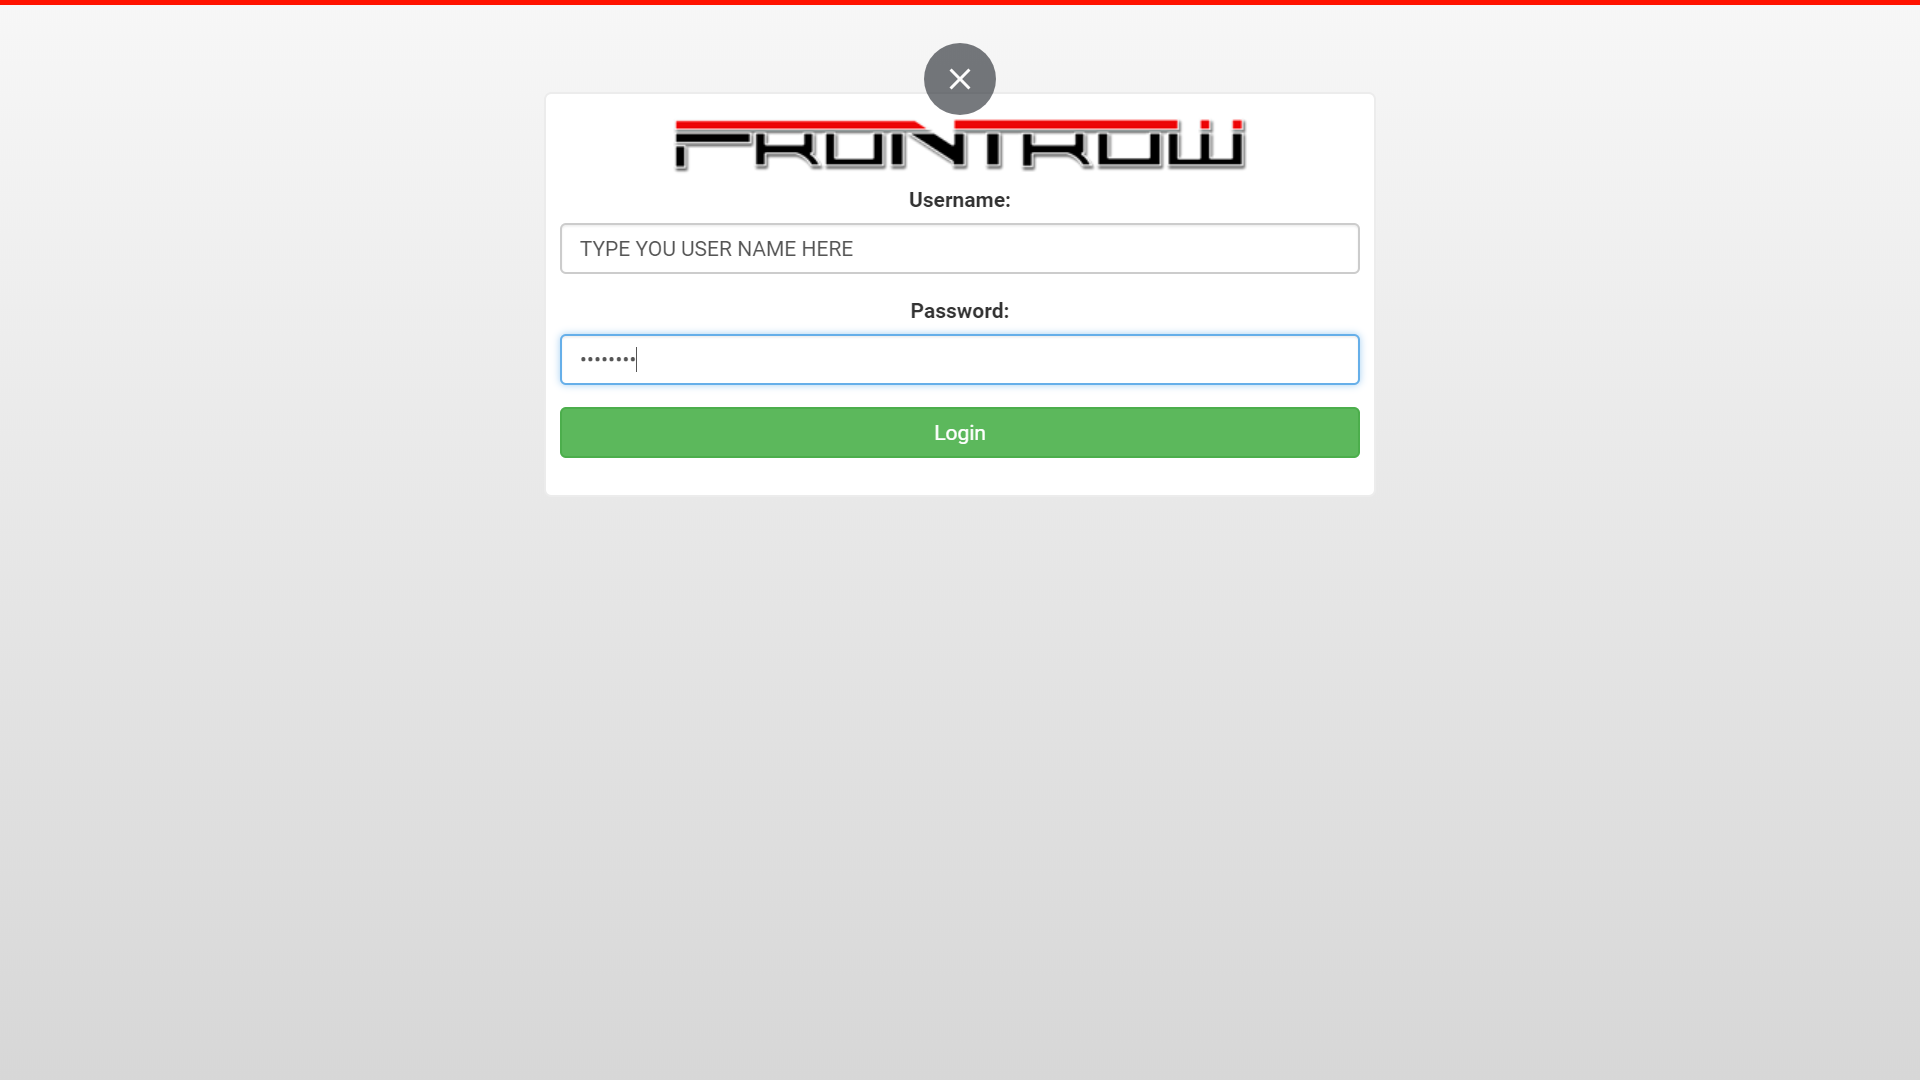 frontrow member login username and password